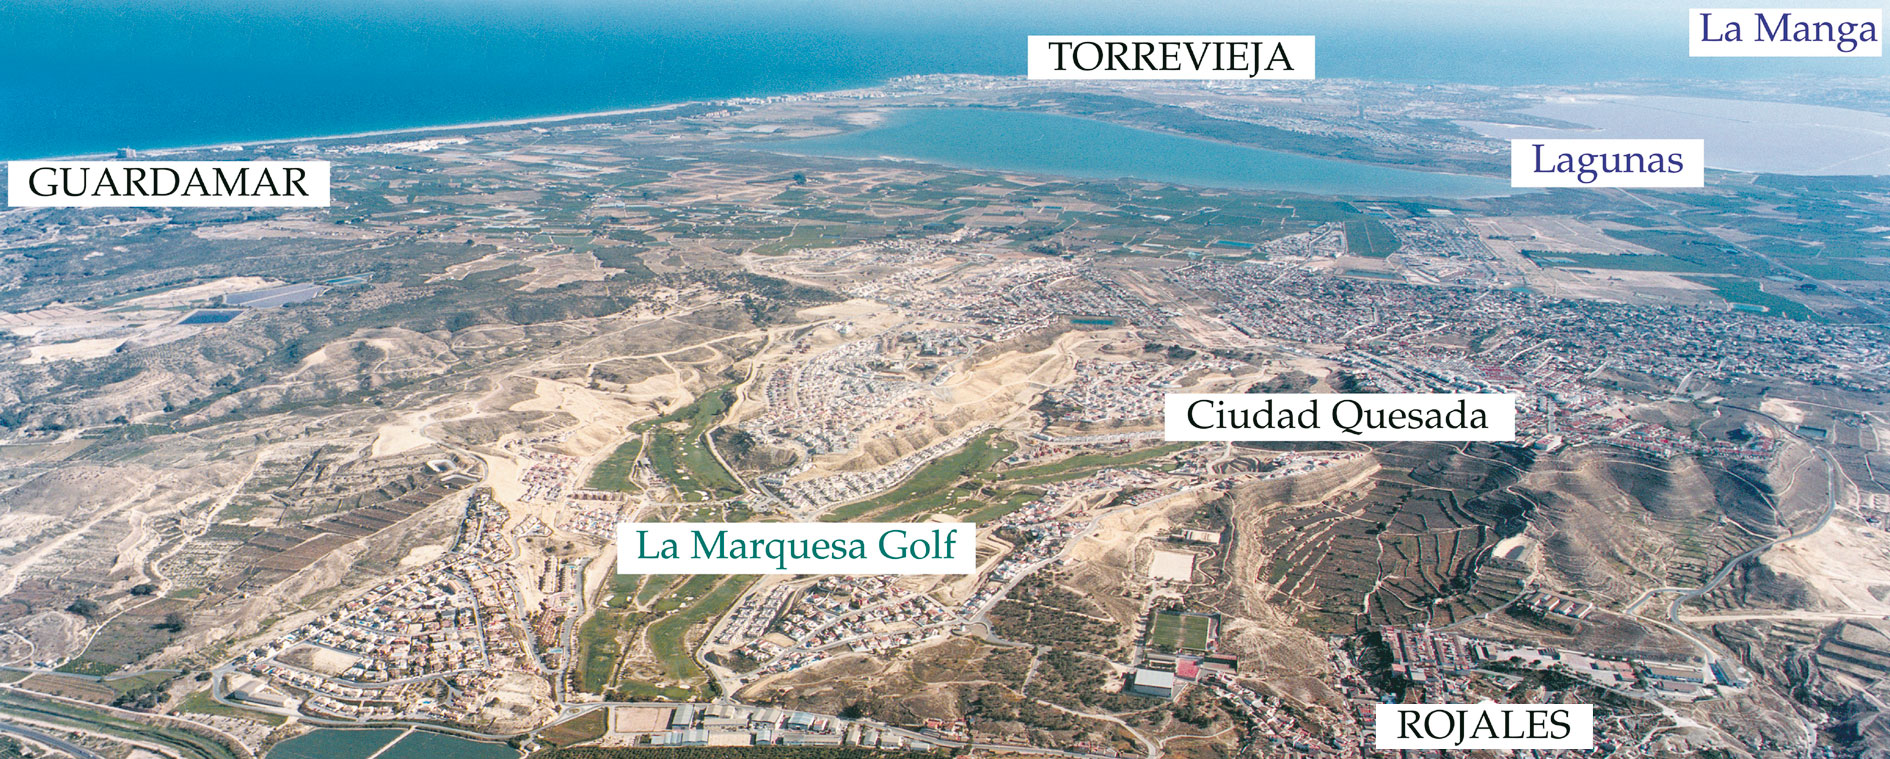 Location Ciudad Quesada Costa Blanca